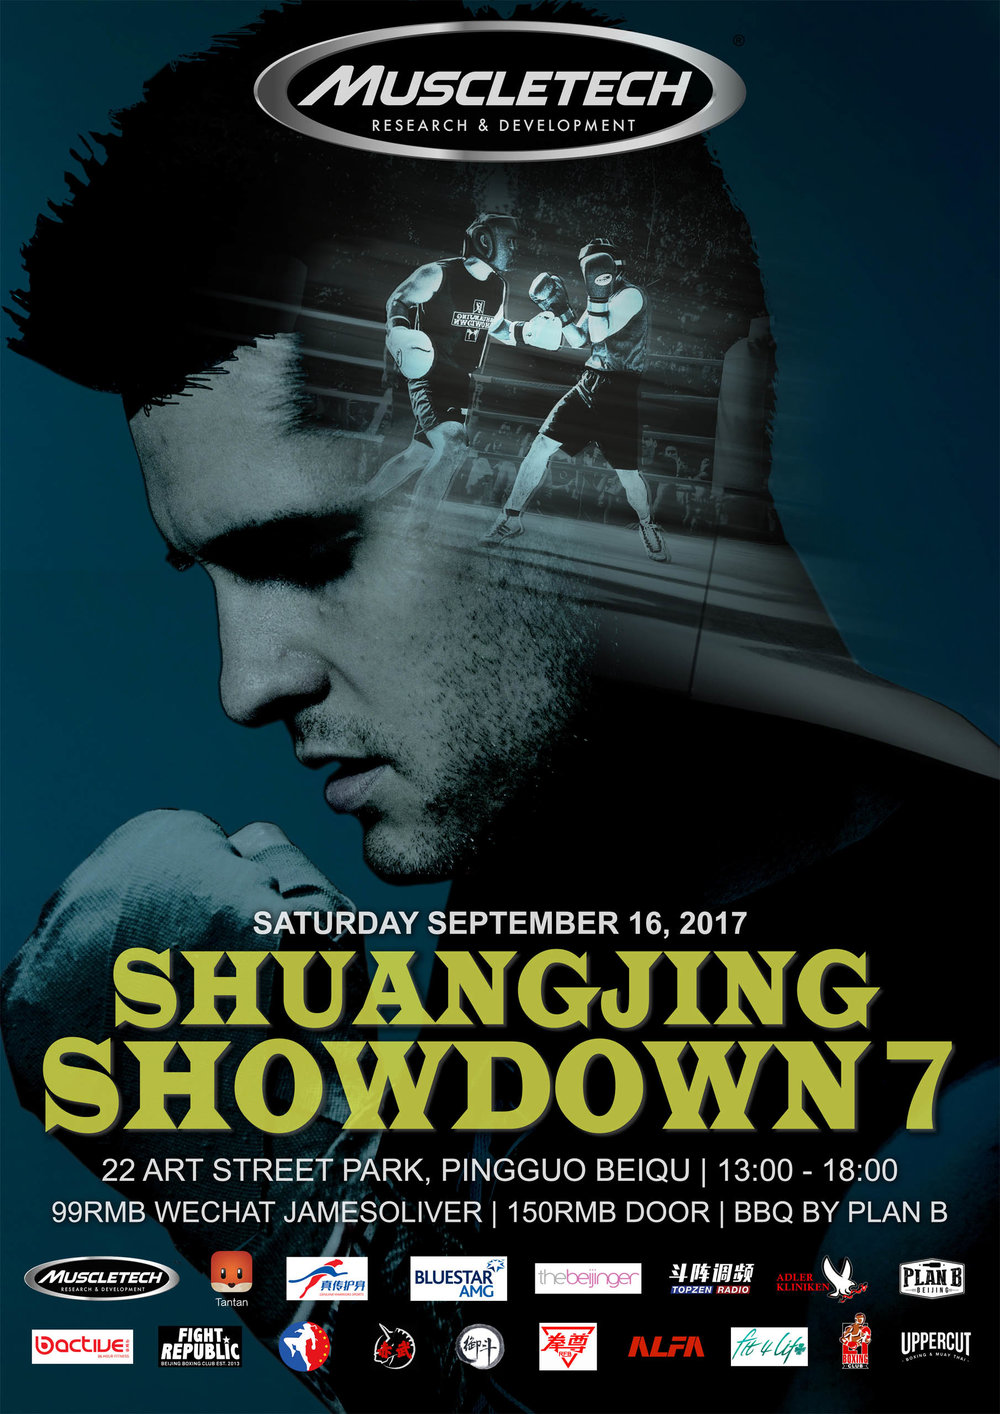 Shuangjing Showdown 7